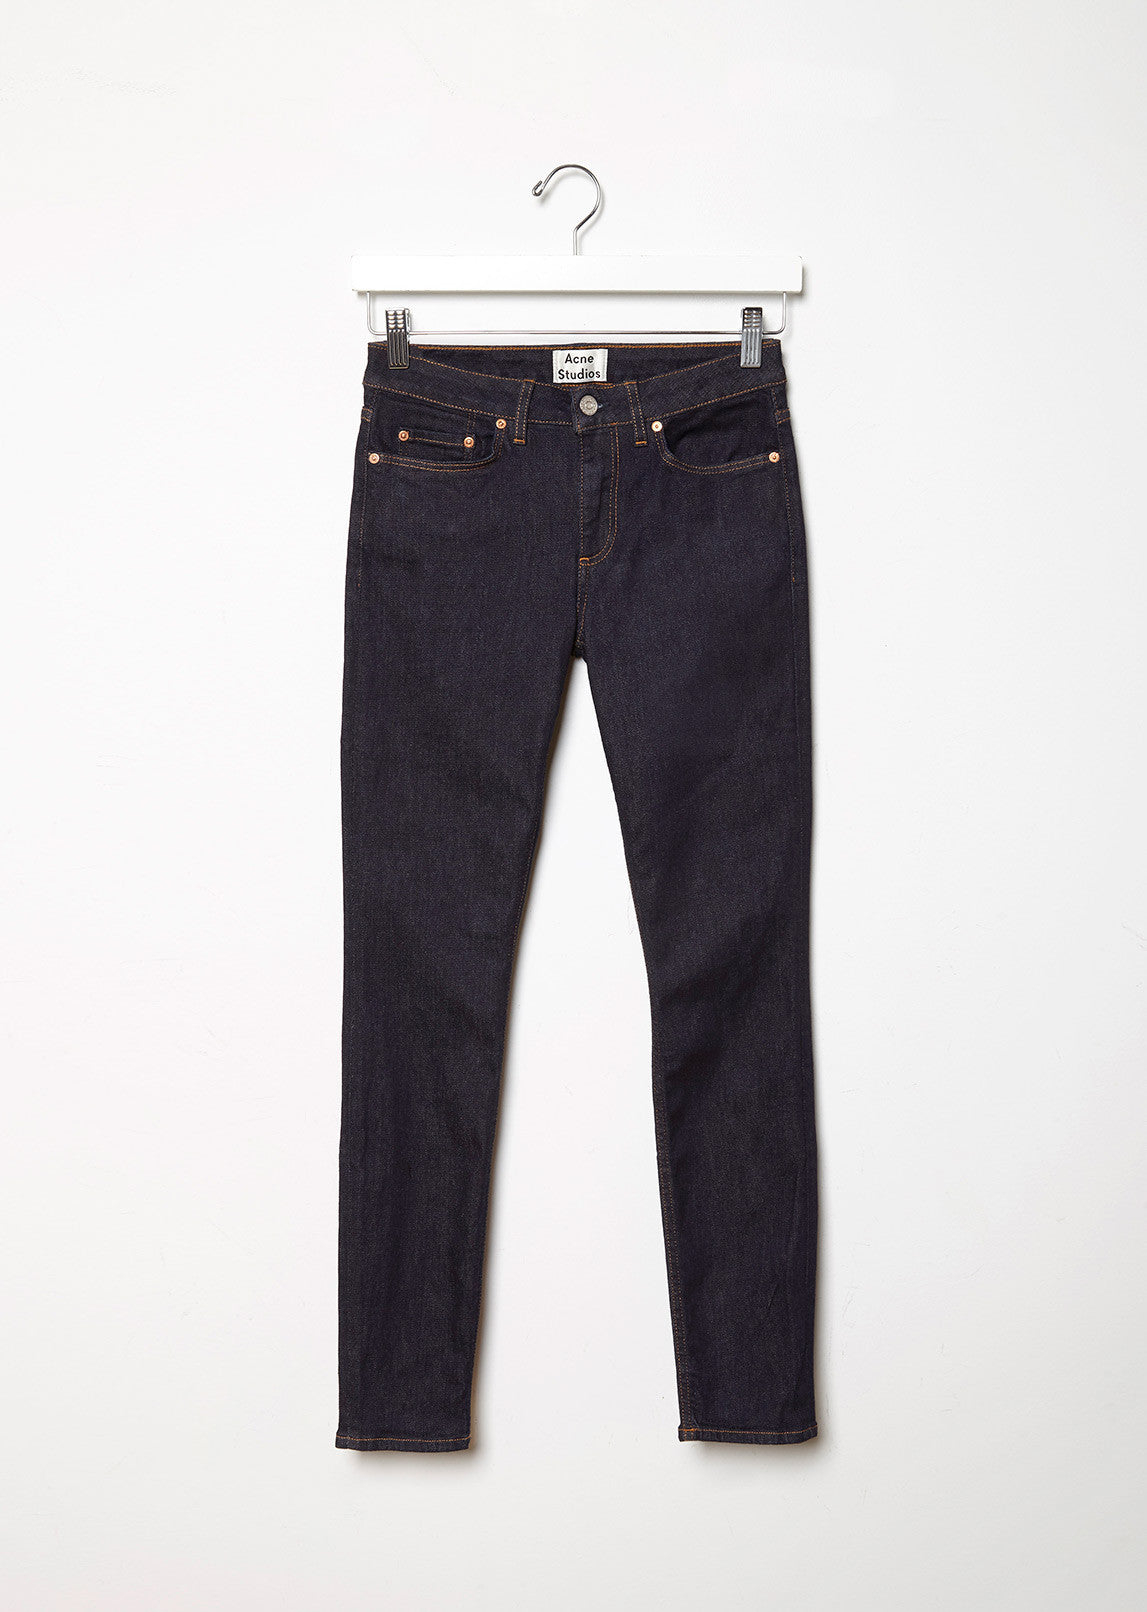 Skin 5 Raw Rinse Jeans